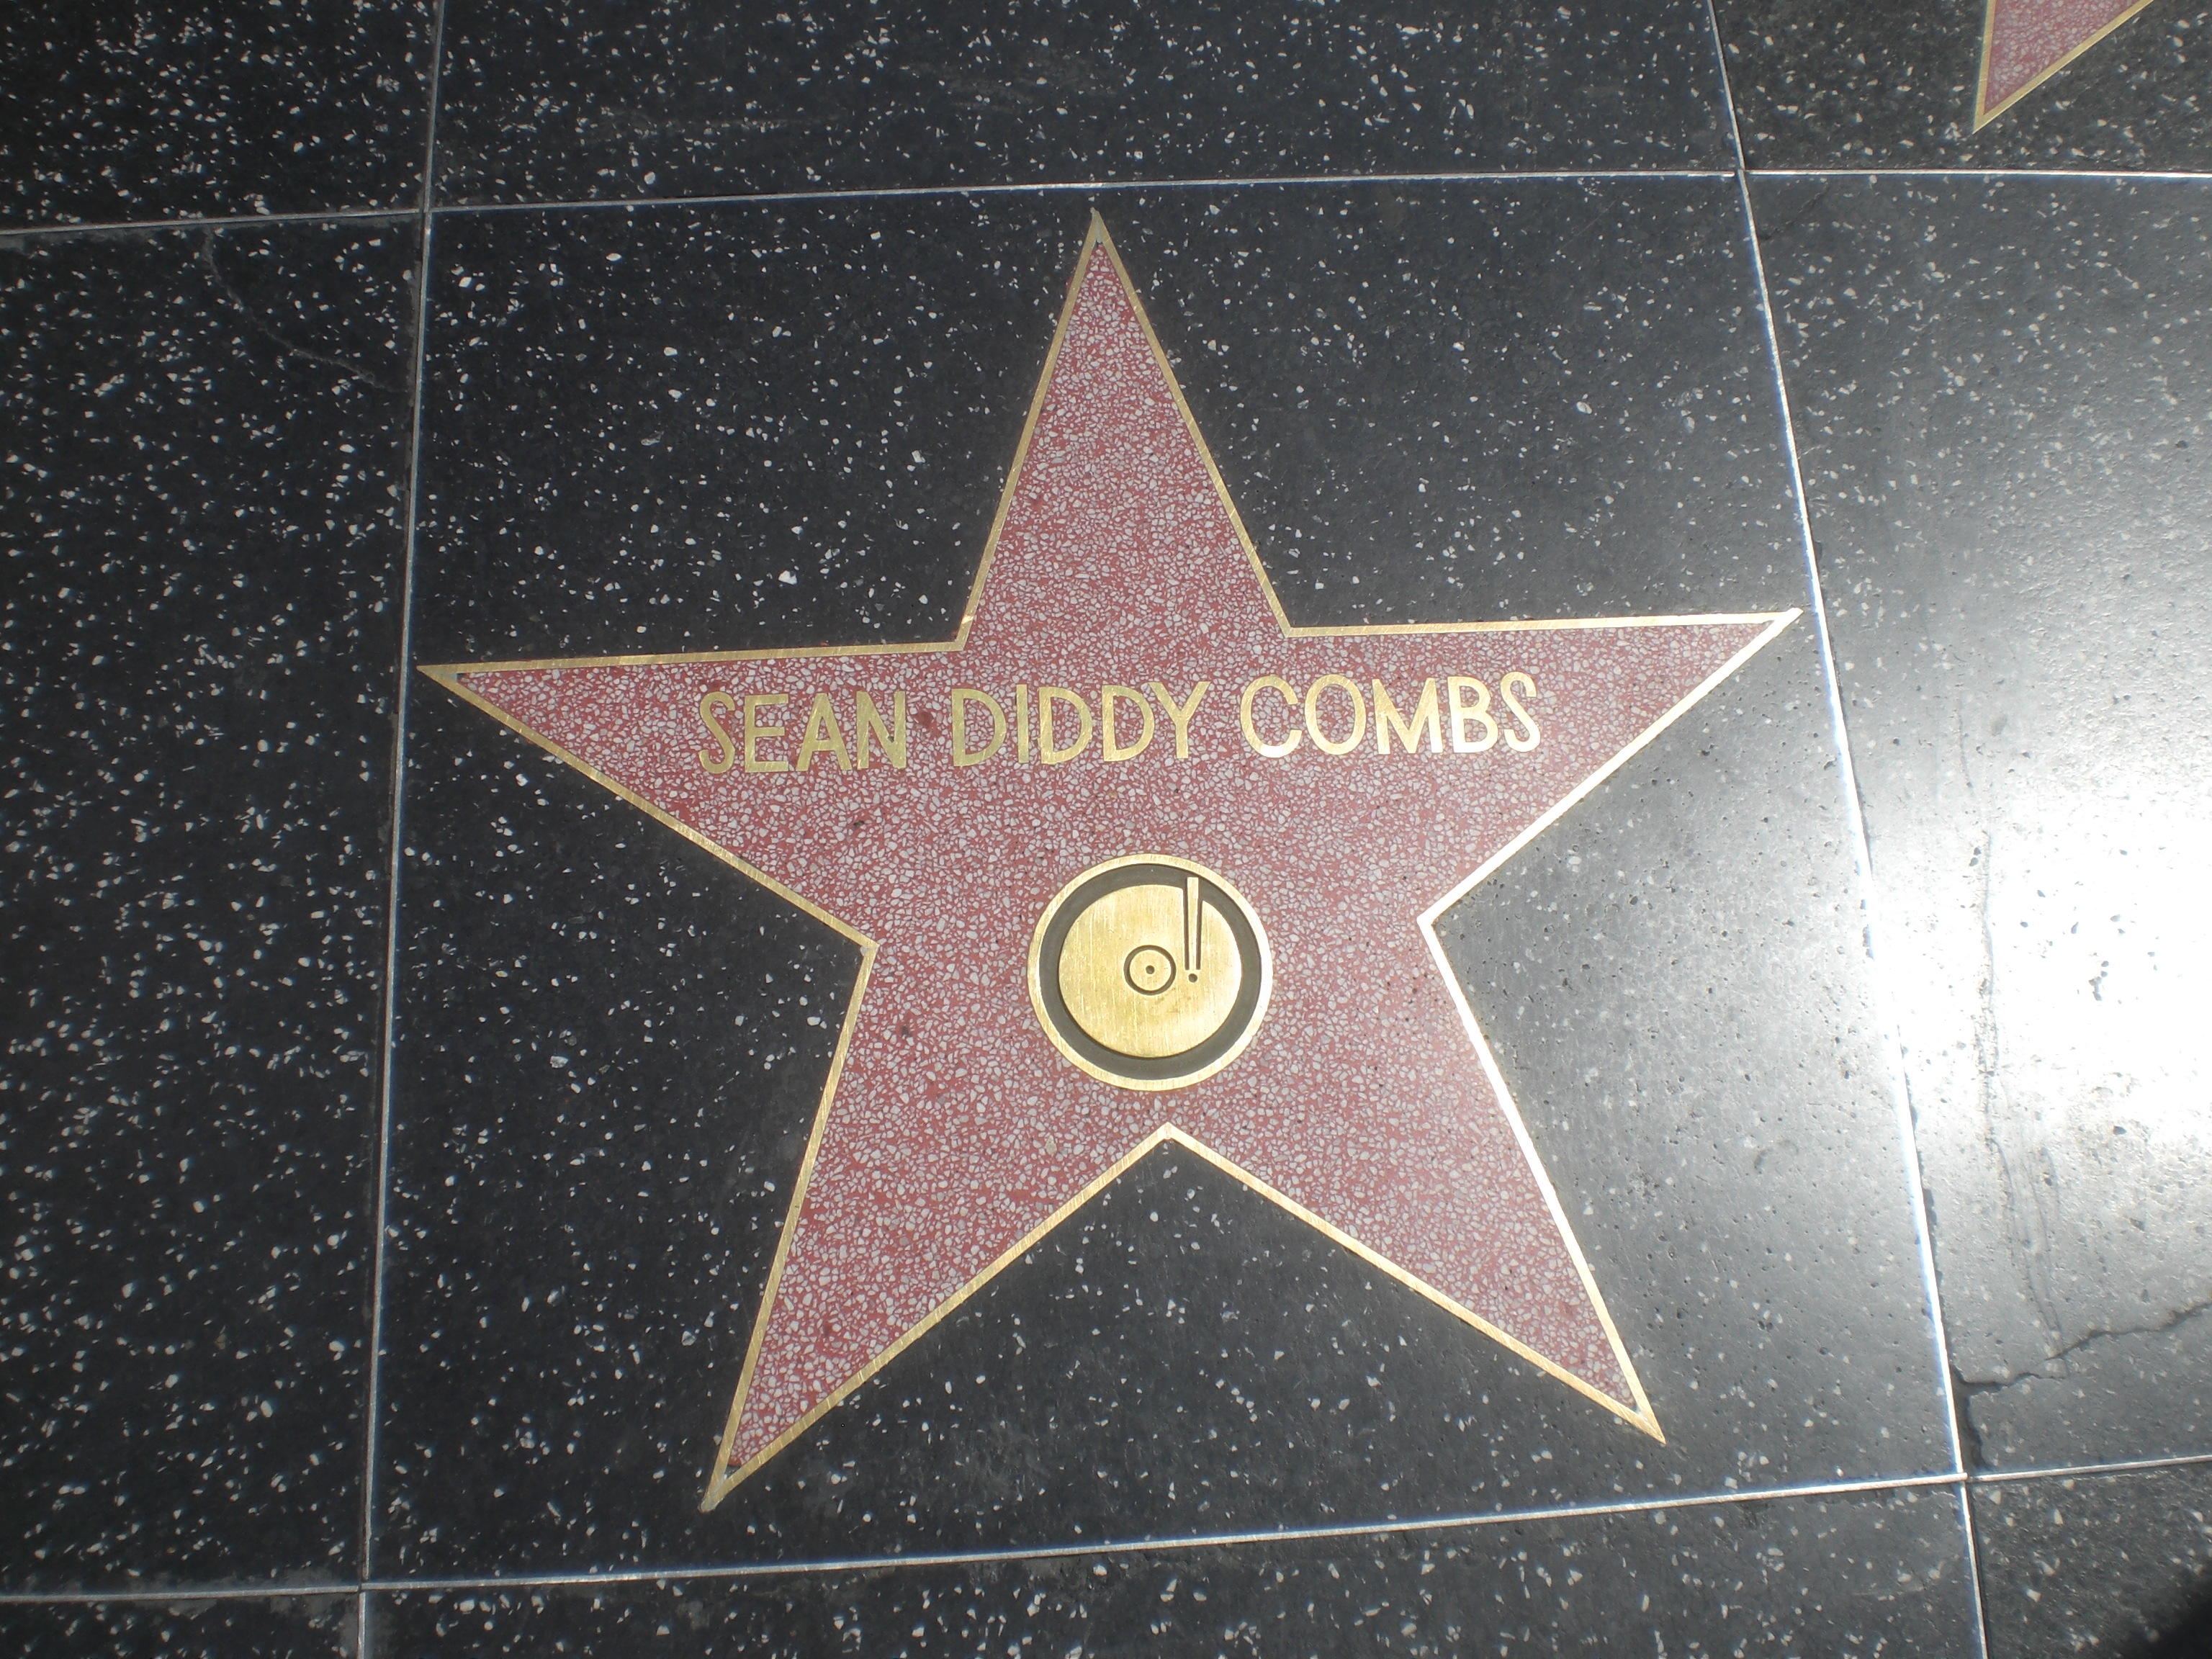 Combs' star on the Hollywood Walk of Fame